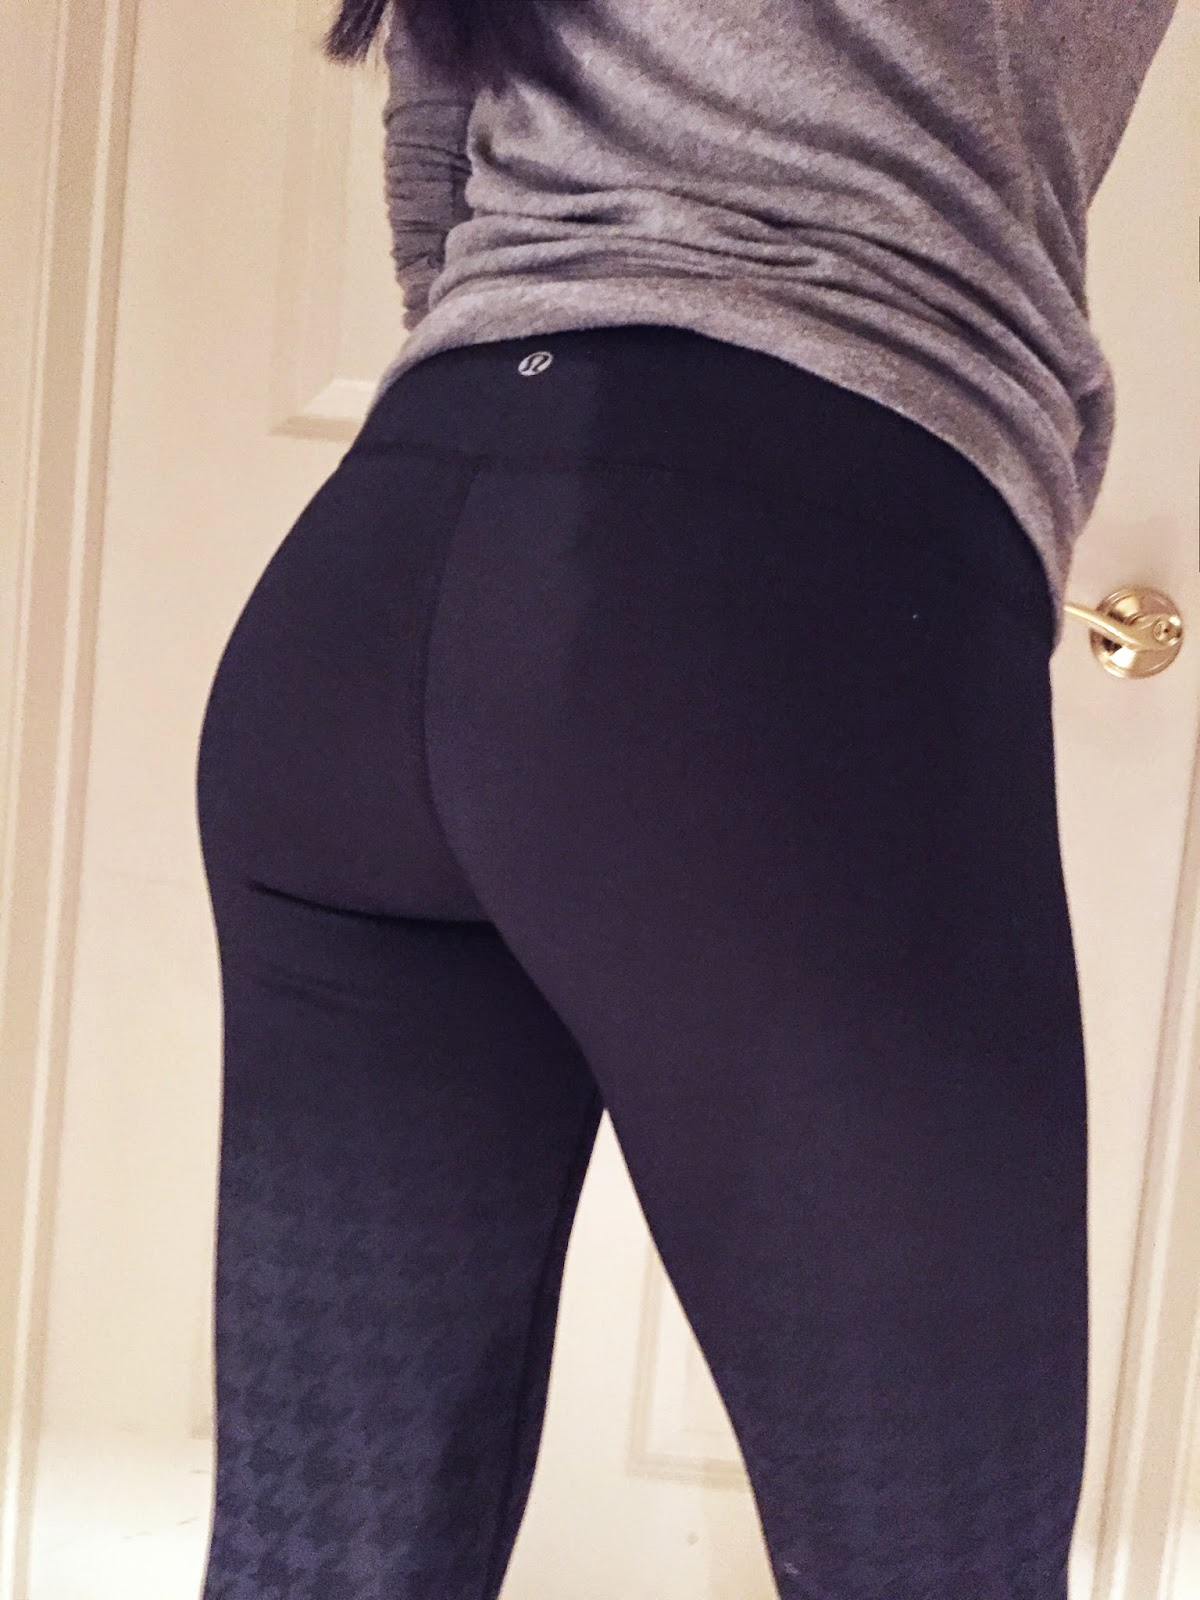 Girls In Yoga Pants - Yoga Pants Pictures, Videos